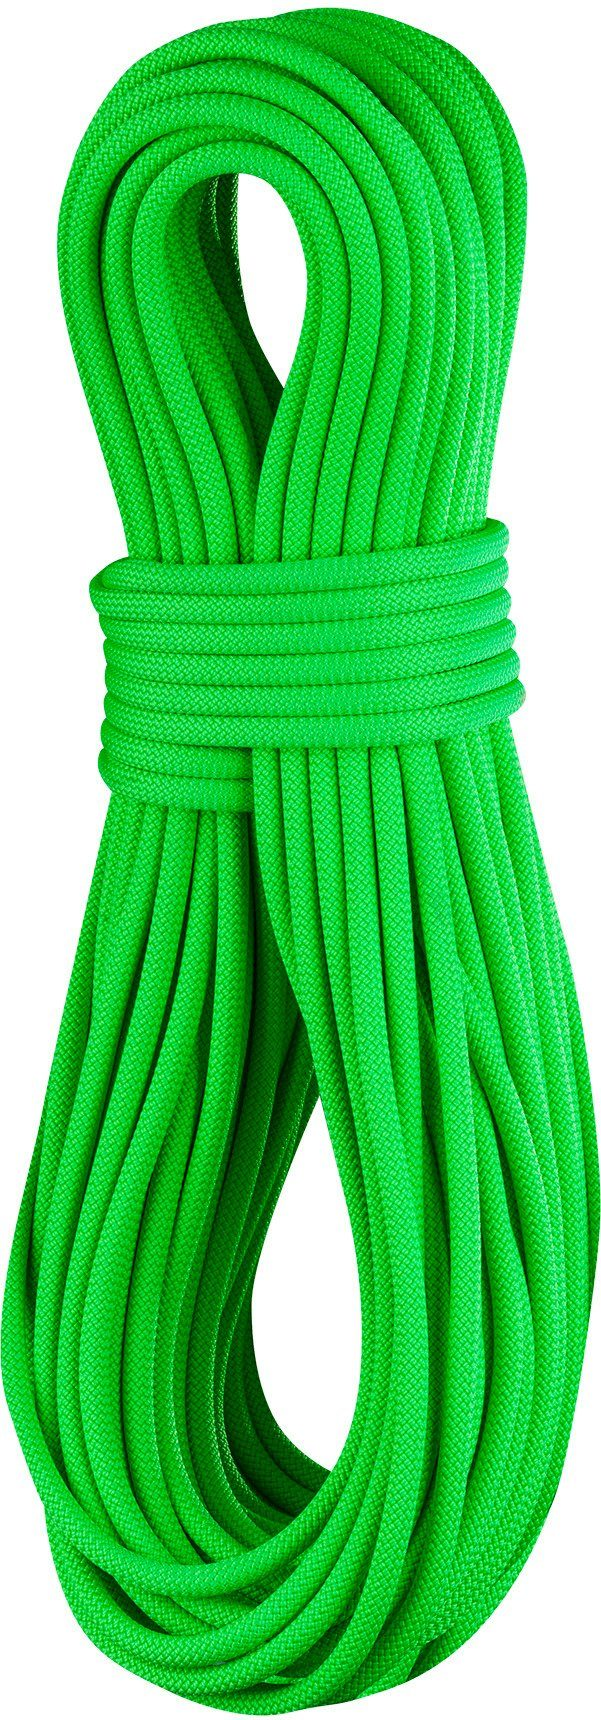 Edelrid Kletterseil »Canary Pro Dry Rope 8,6mm 70m«